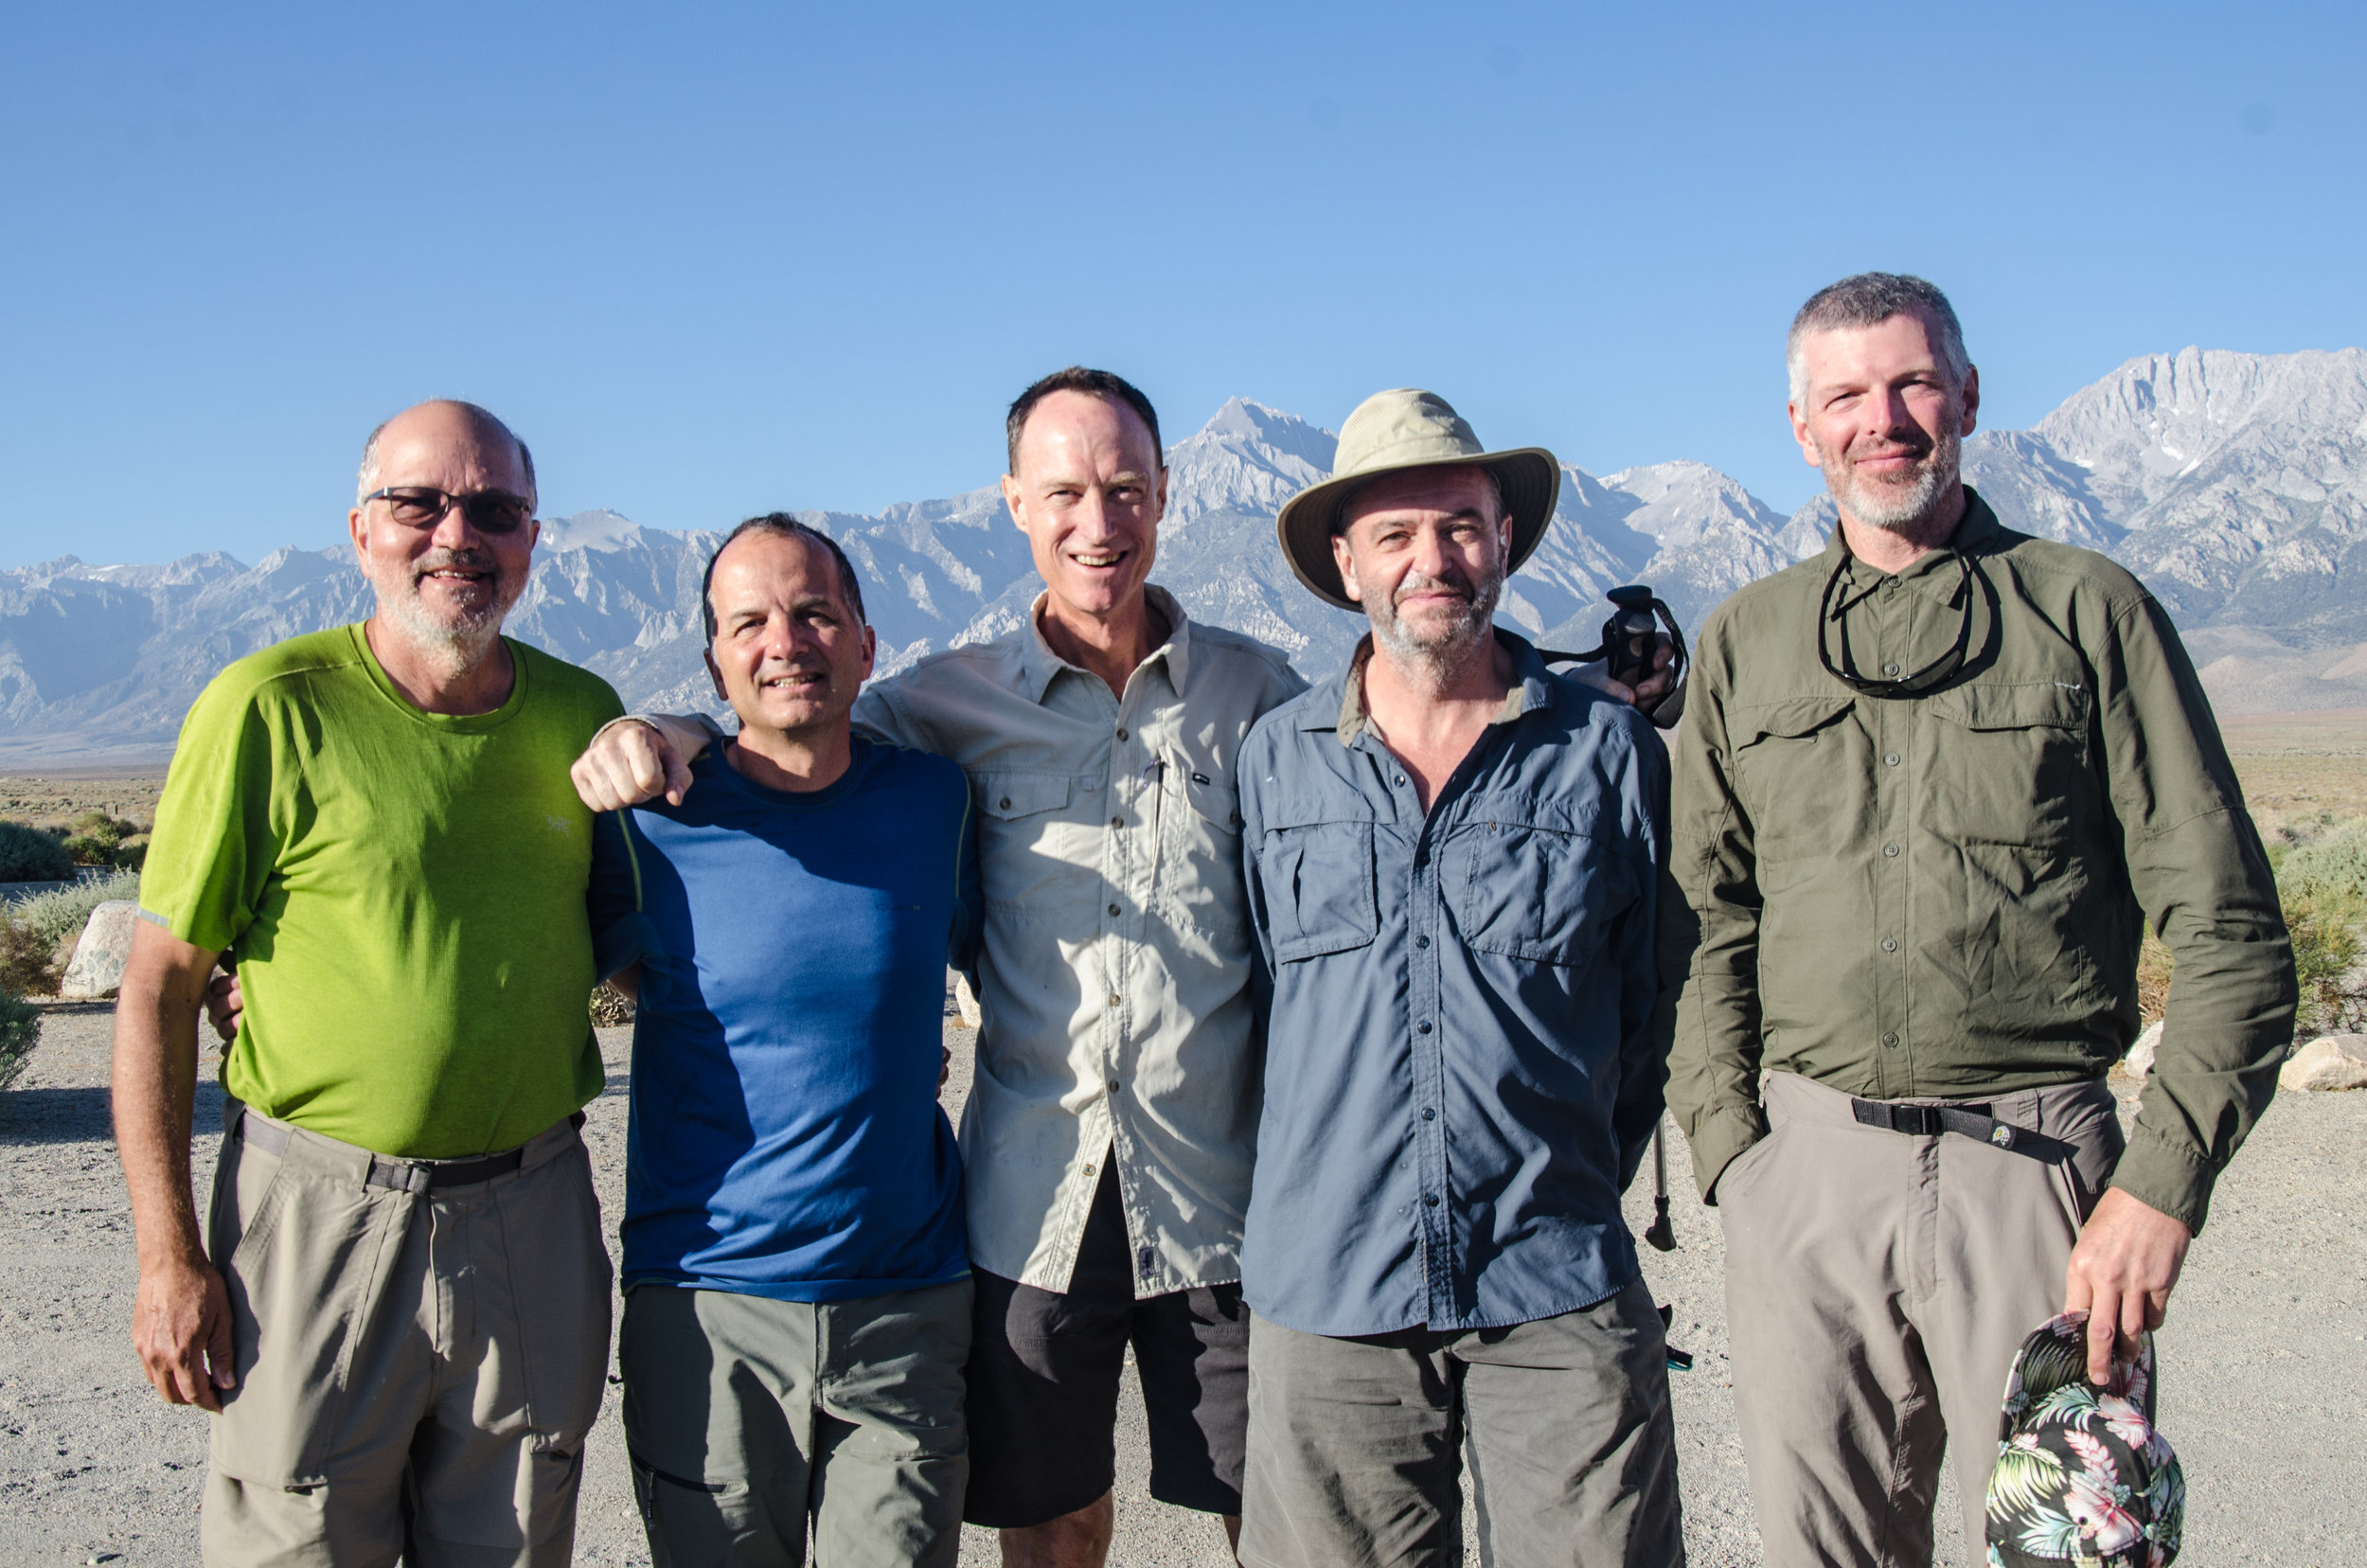 aug29and30hikers-2.jpg